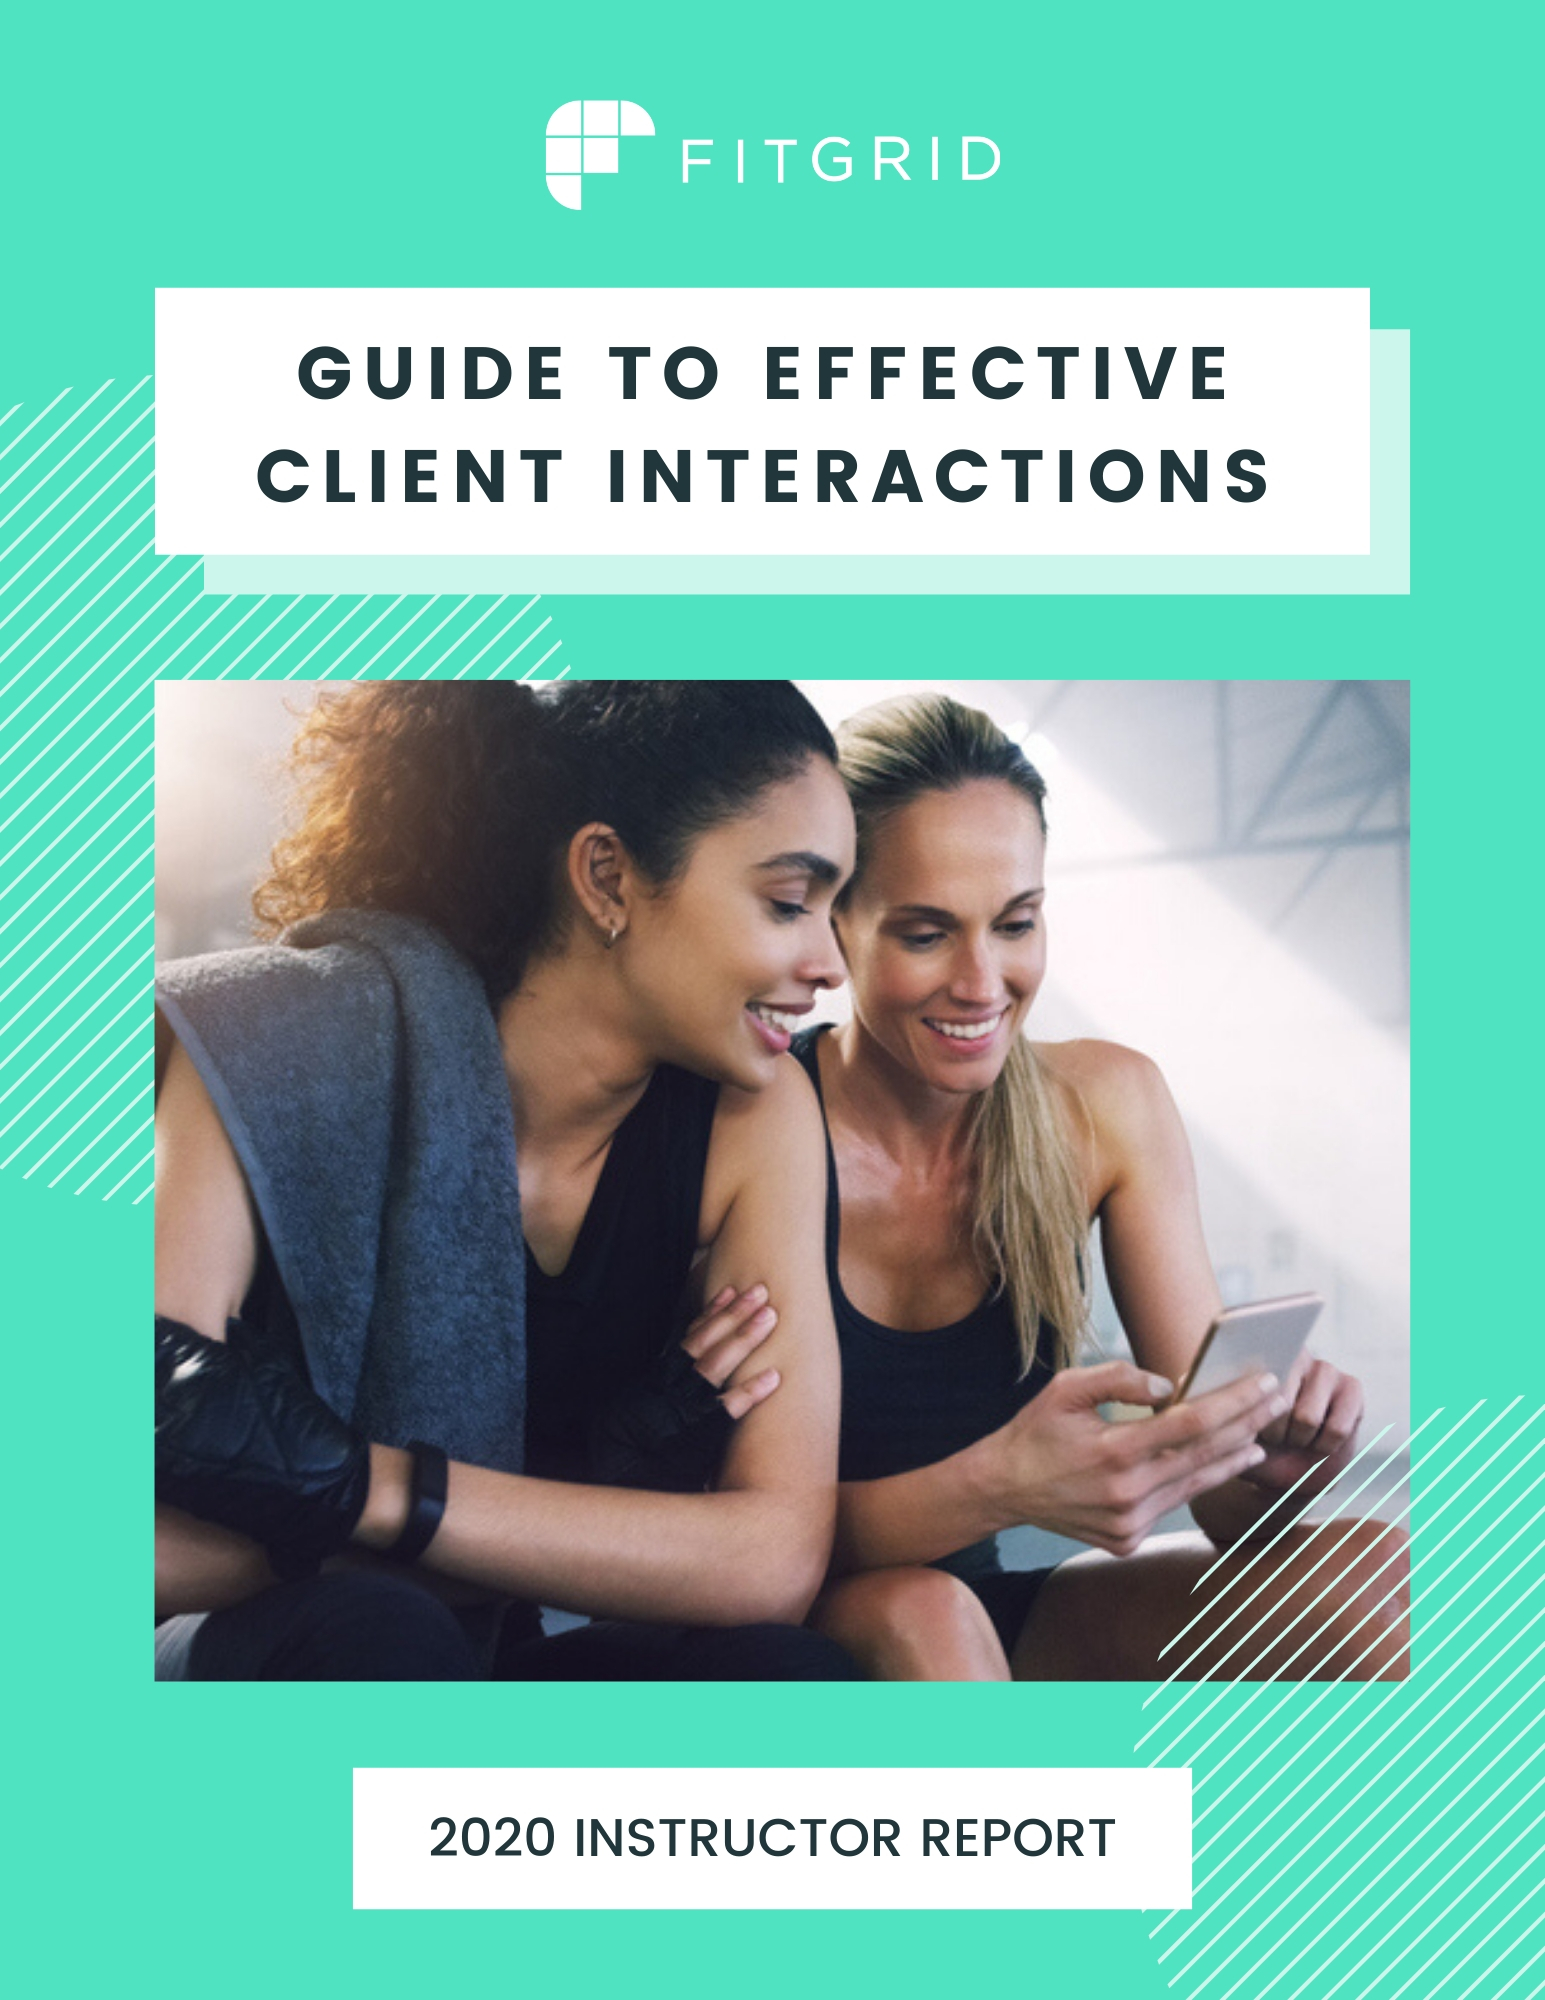 Guide to Effective Client Interactions_cover page_2020